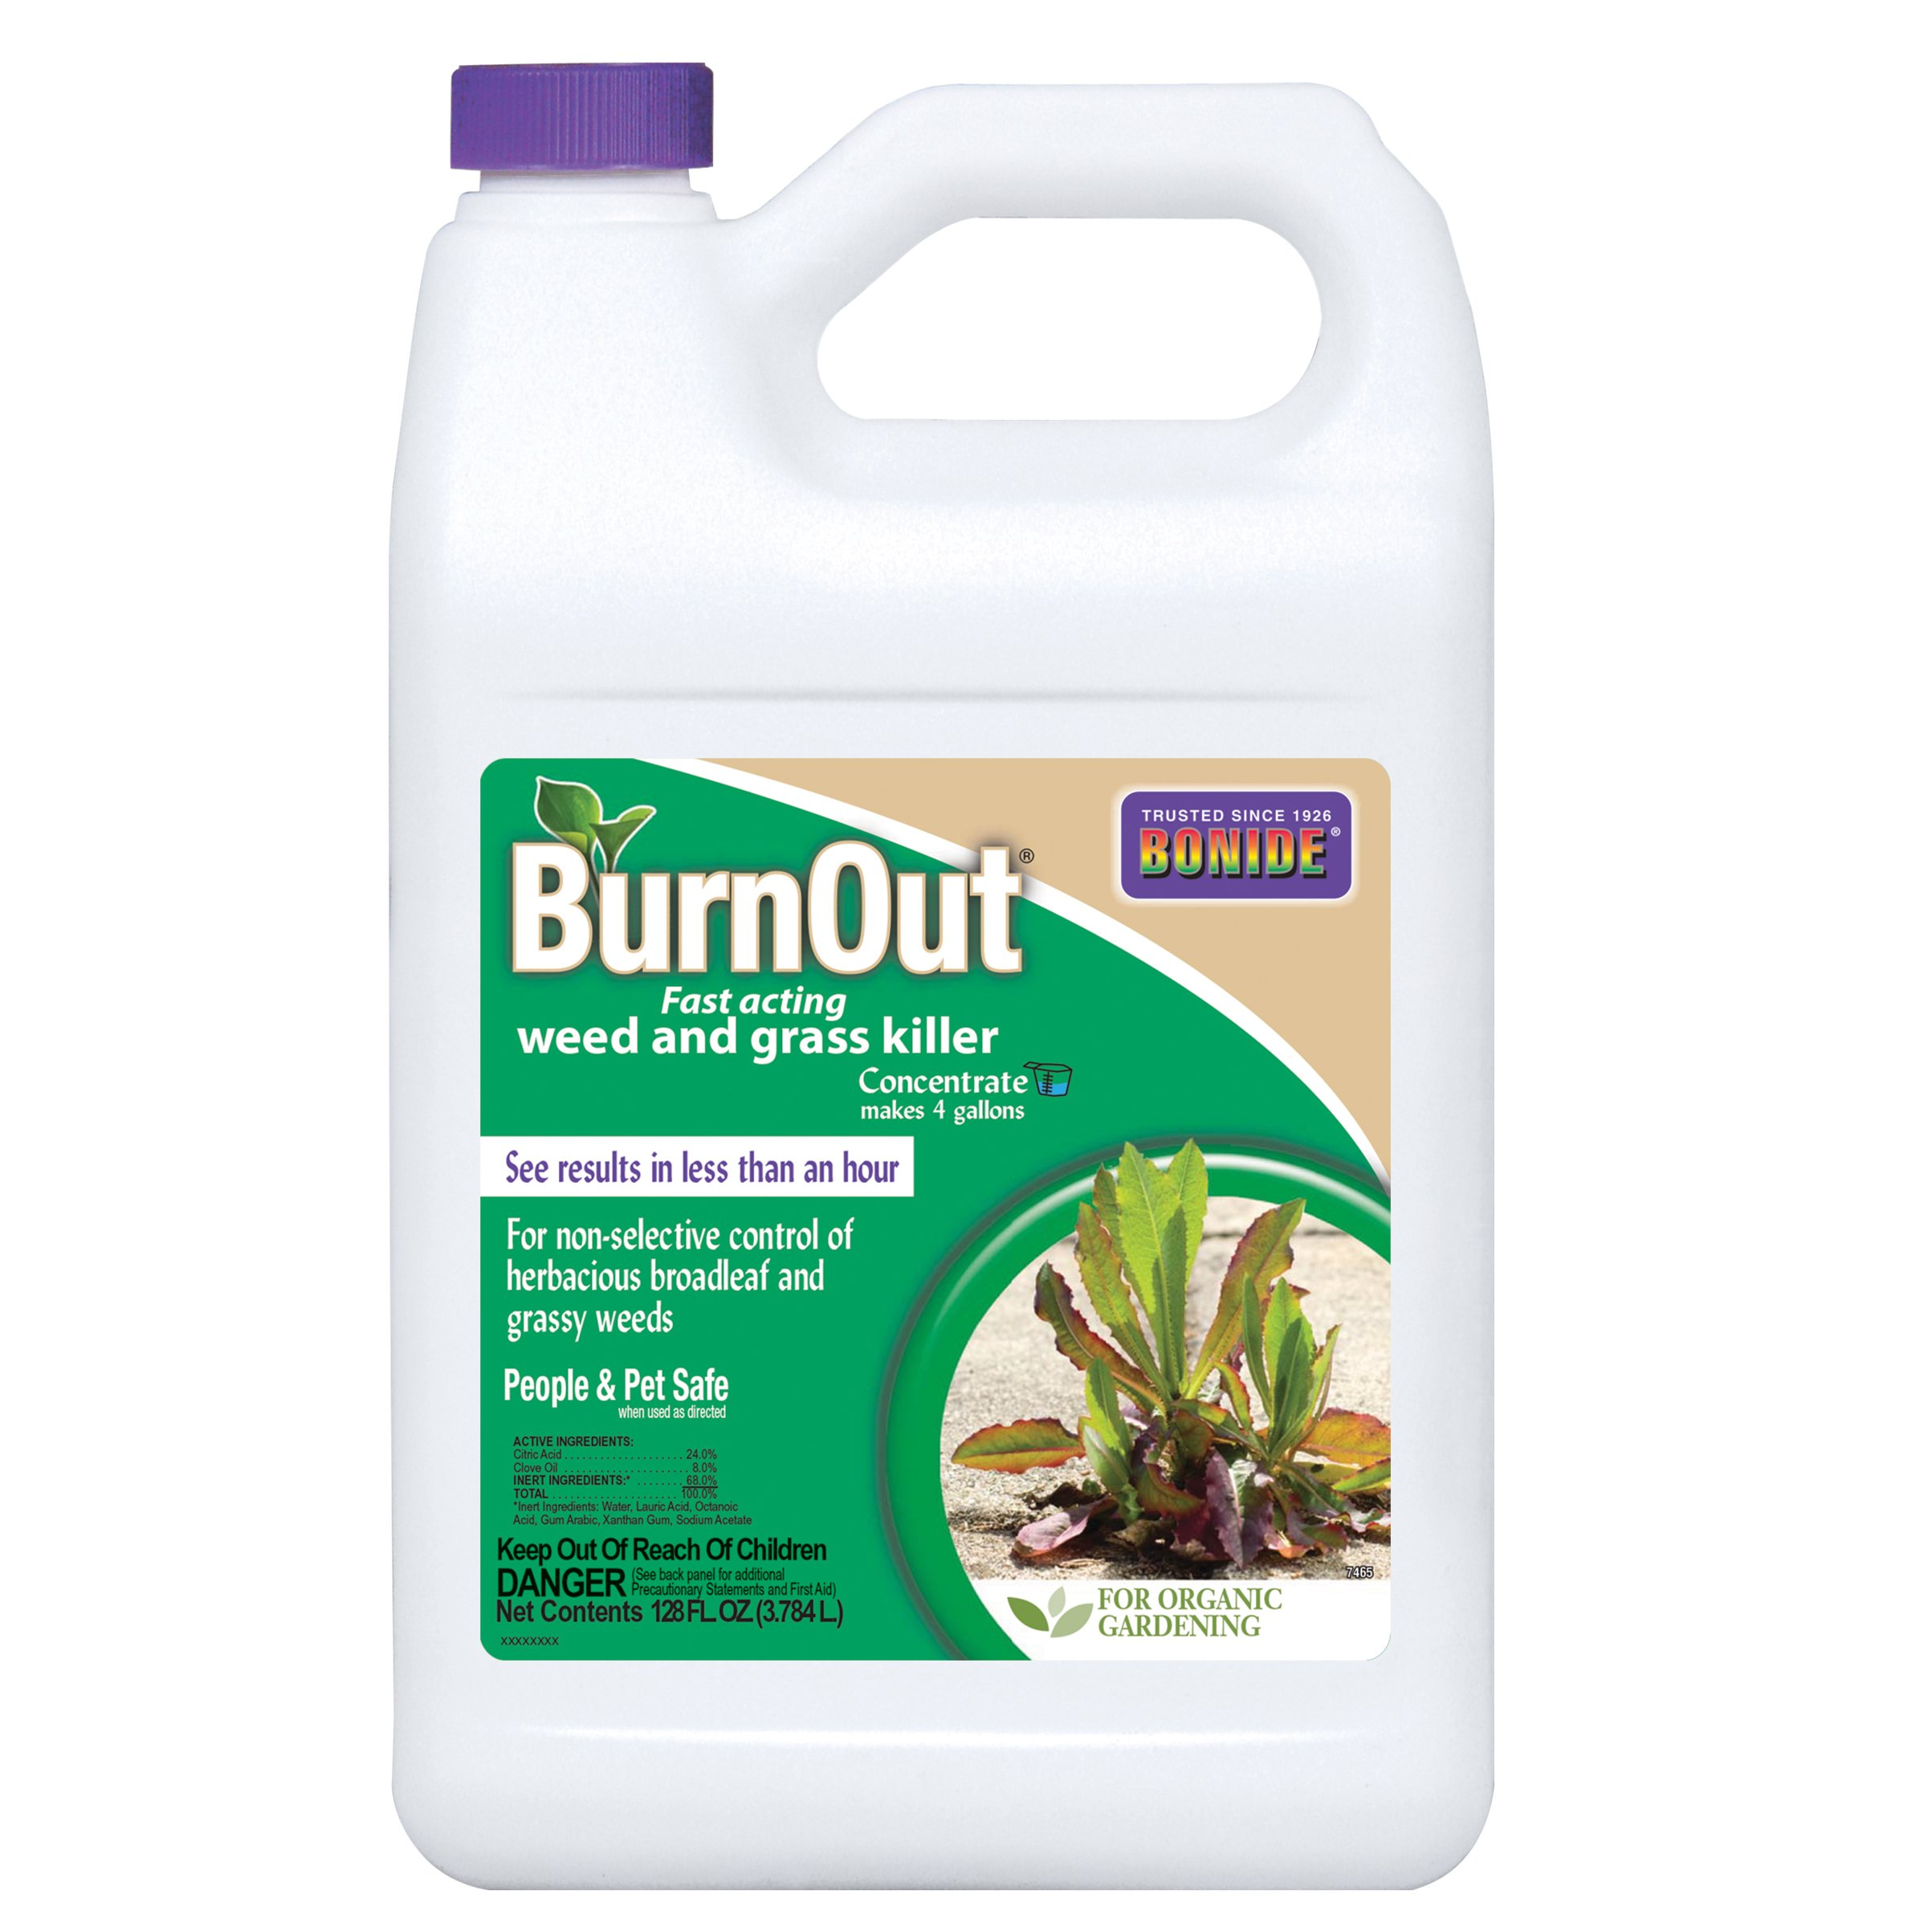 Bonide (7465) Burn Out Weed and Grass Concentrate Killer, 1 gallon